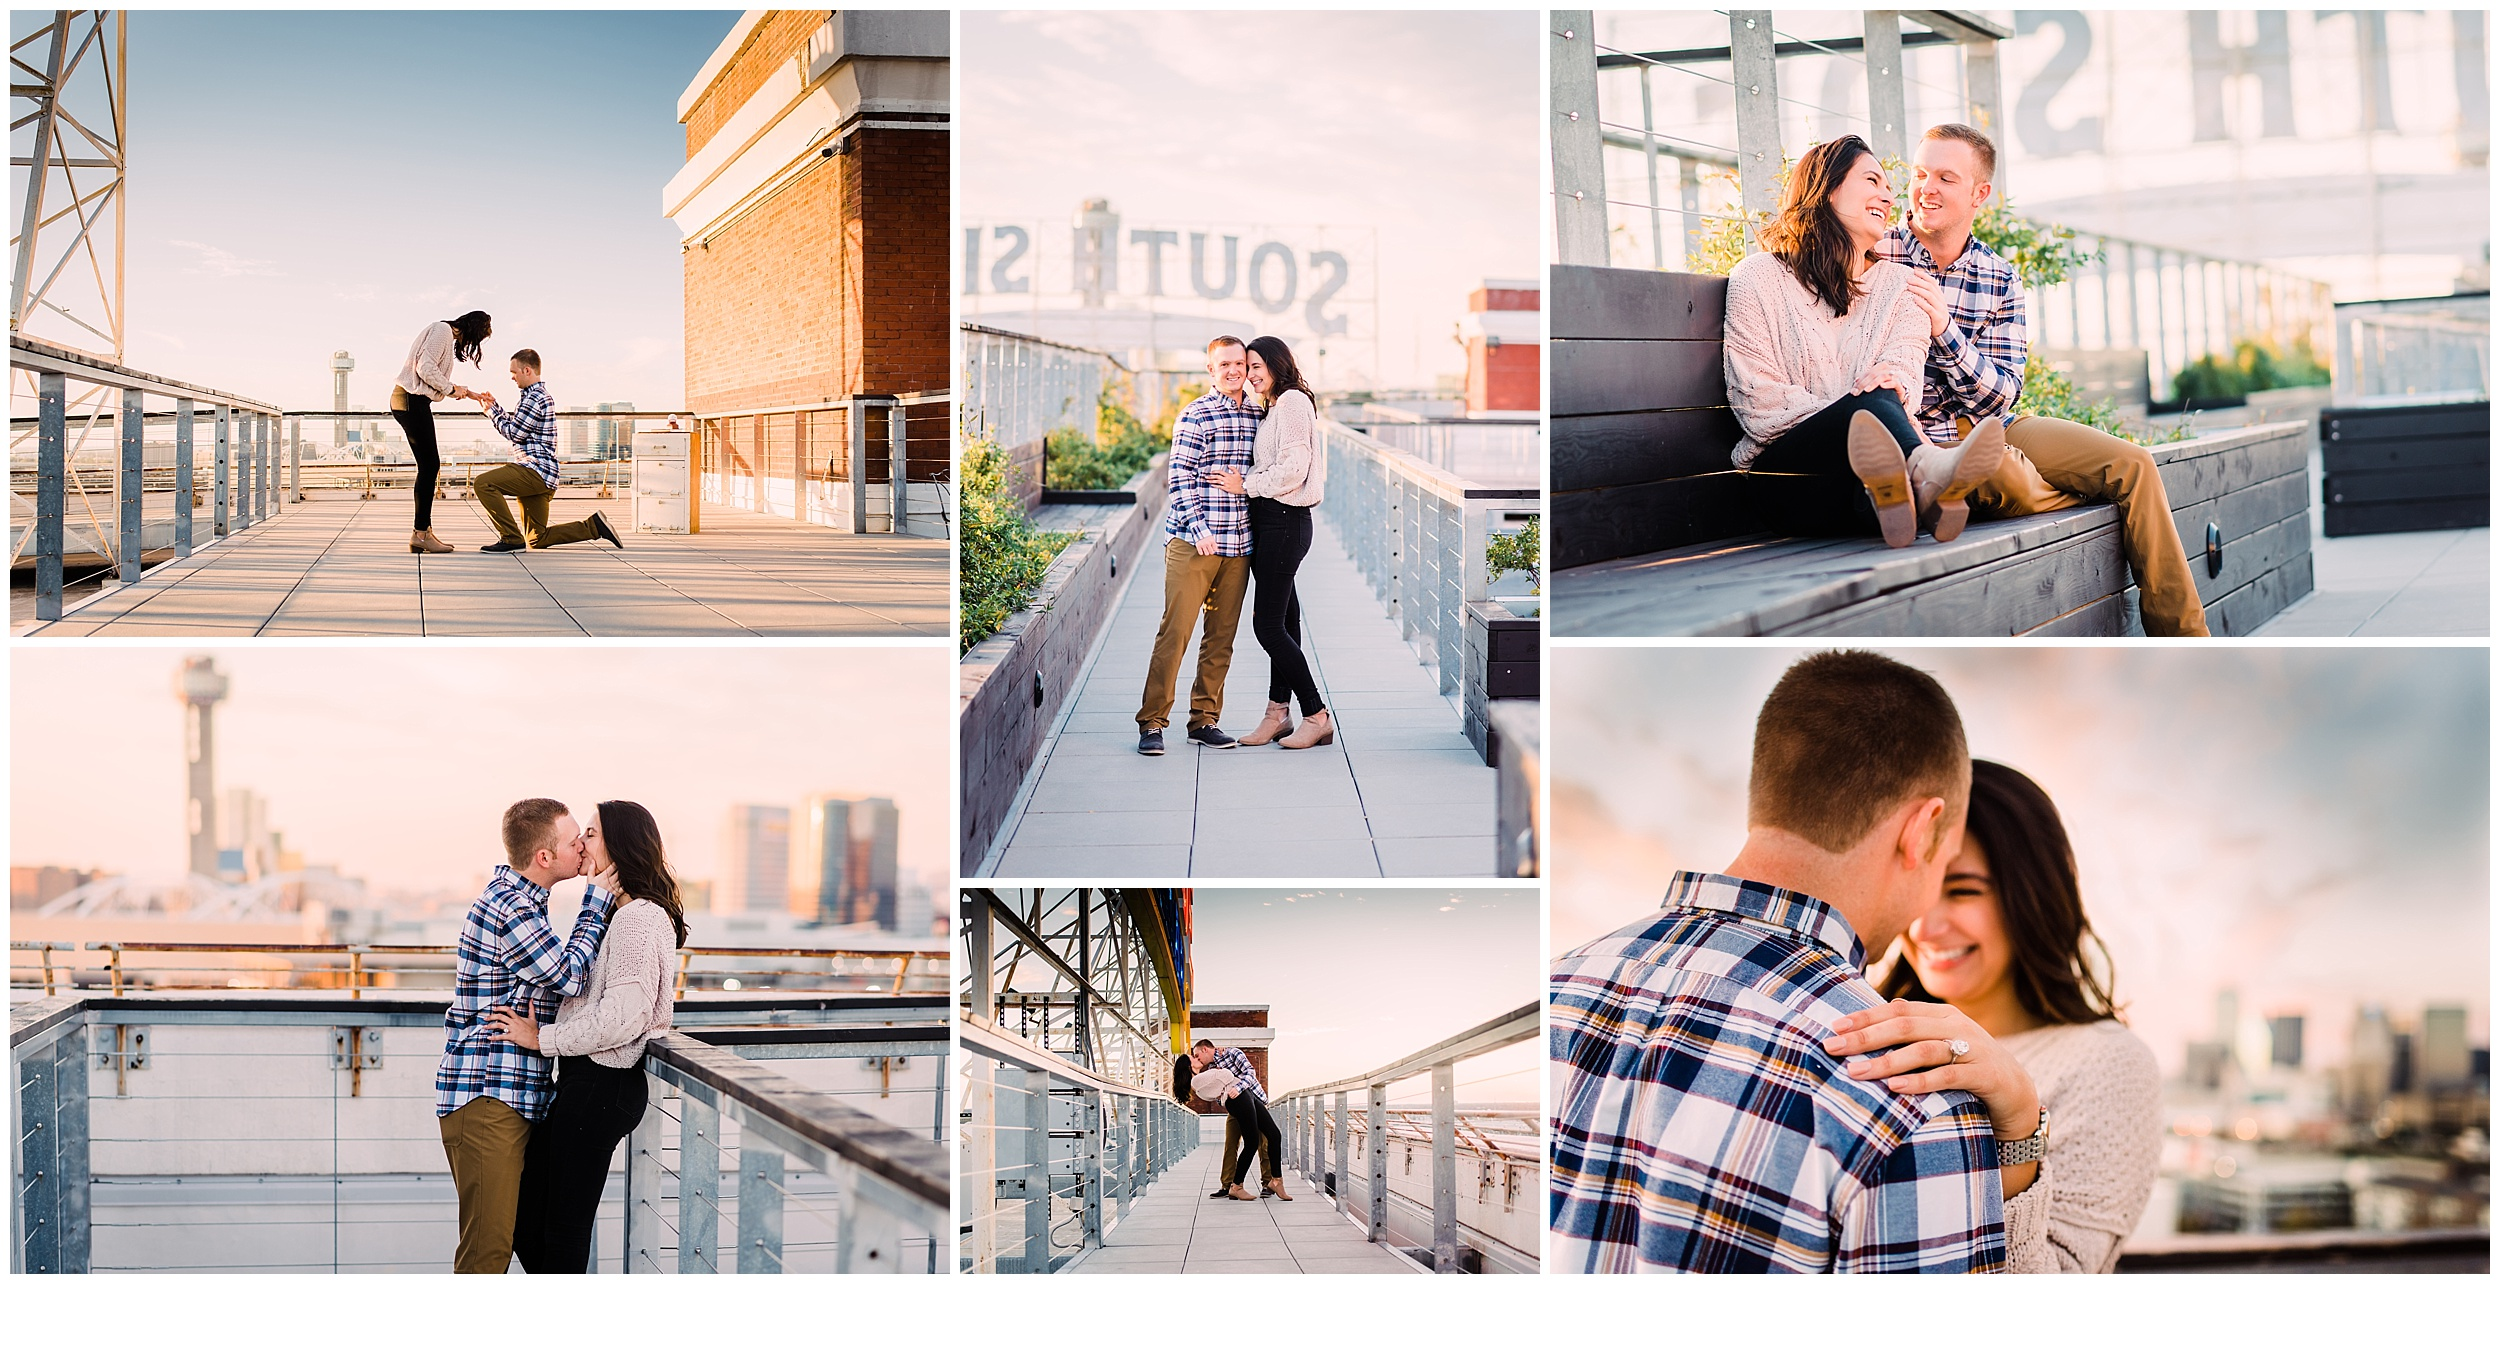 Surprise Proposal and Engagement Session - Dallas, Texas